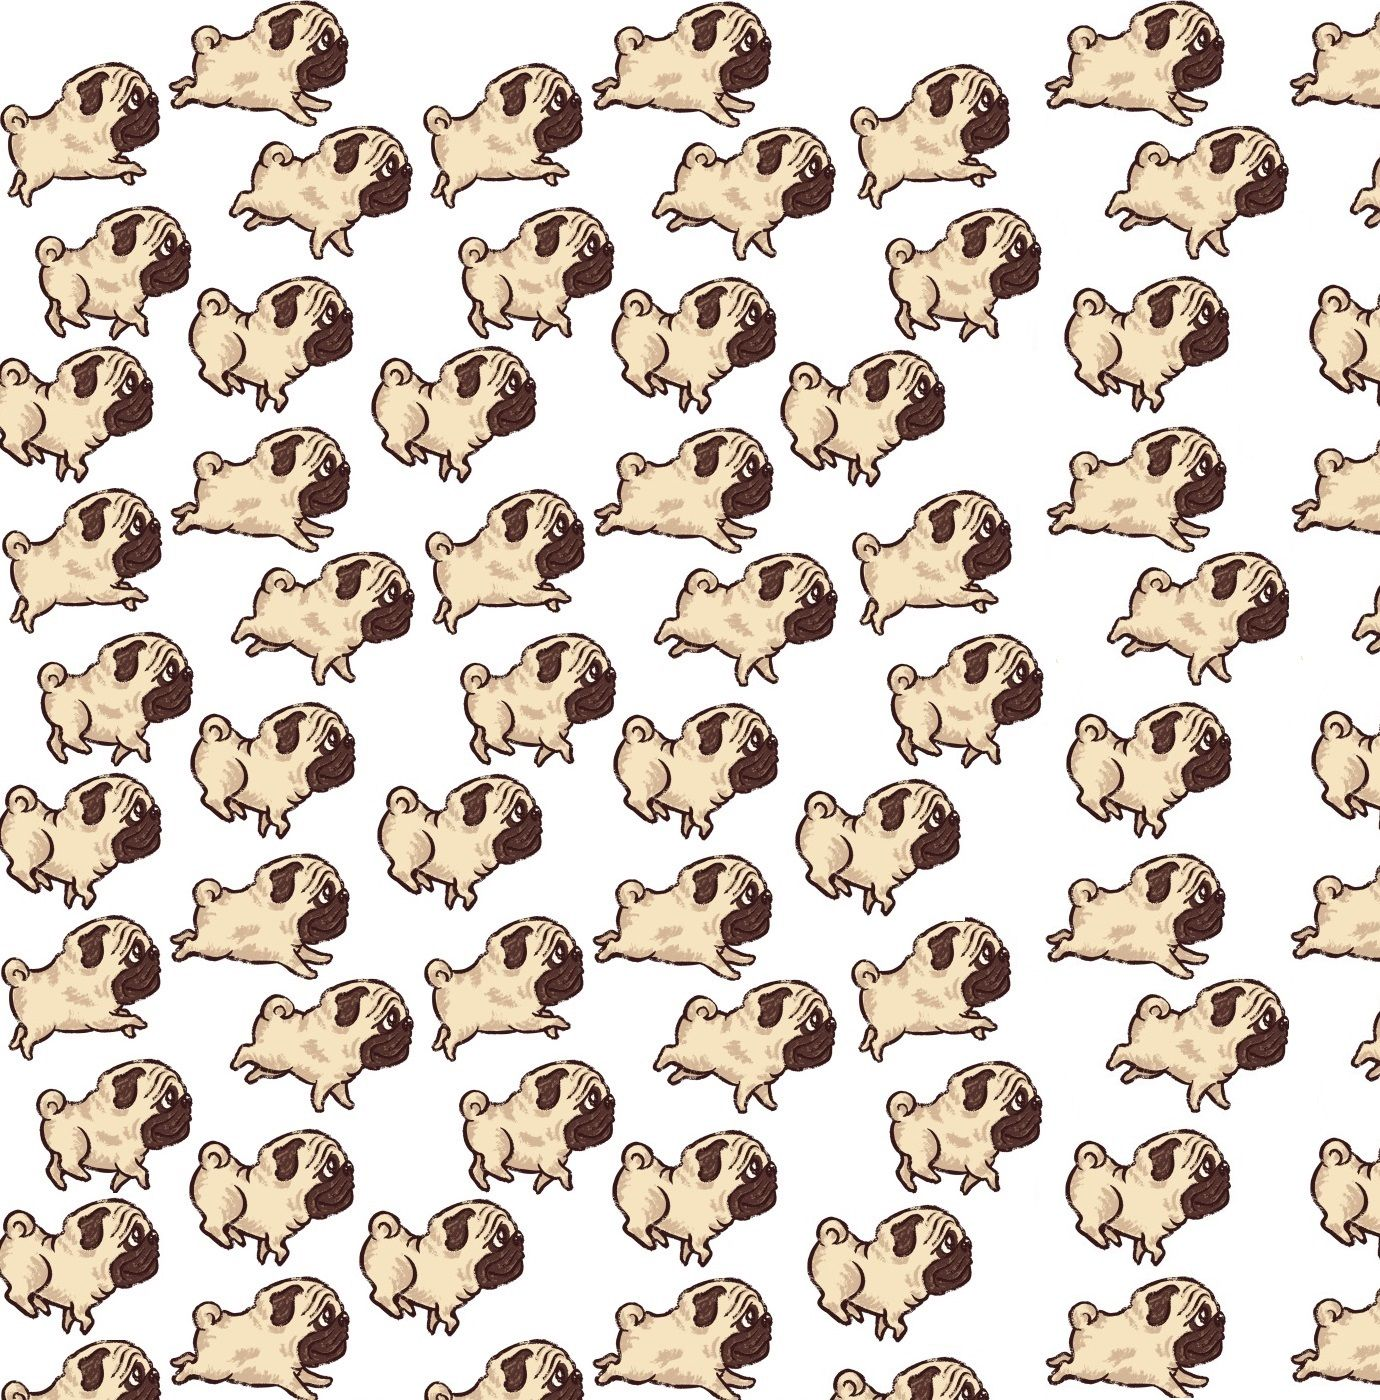 1380x1400 Free download Use this pattern to make a cute Pug Background ...